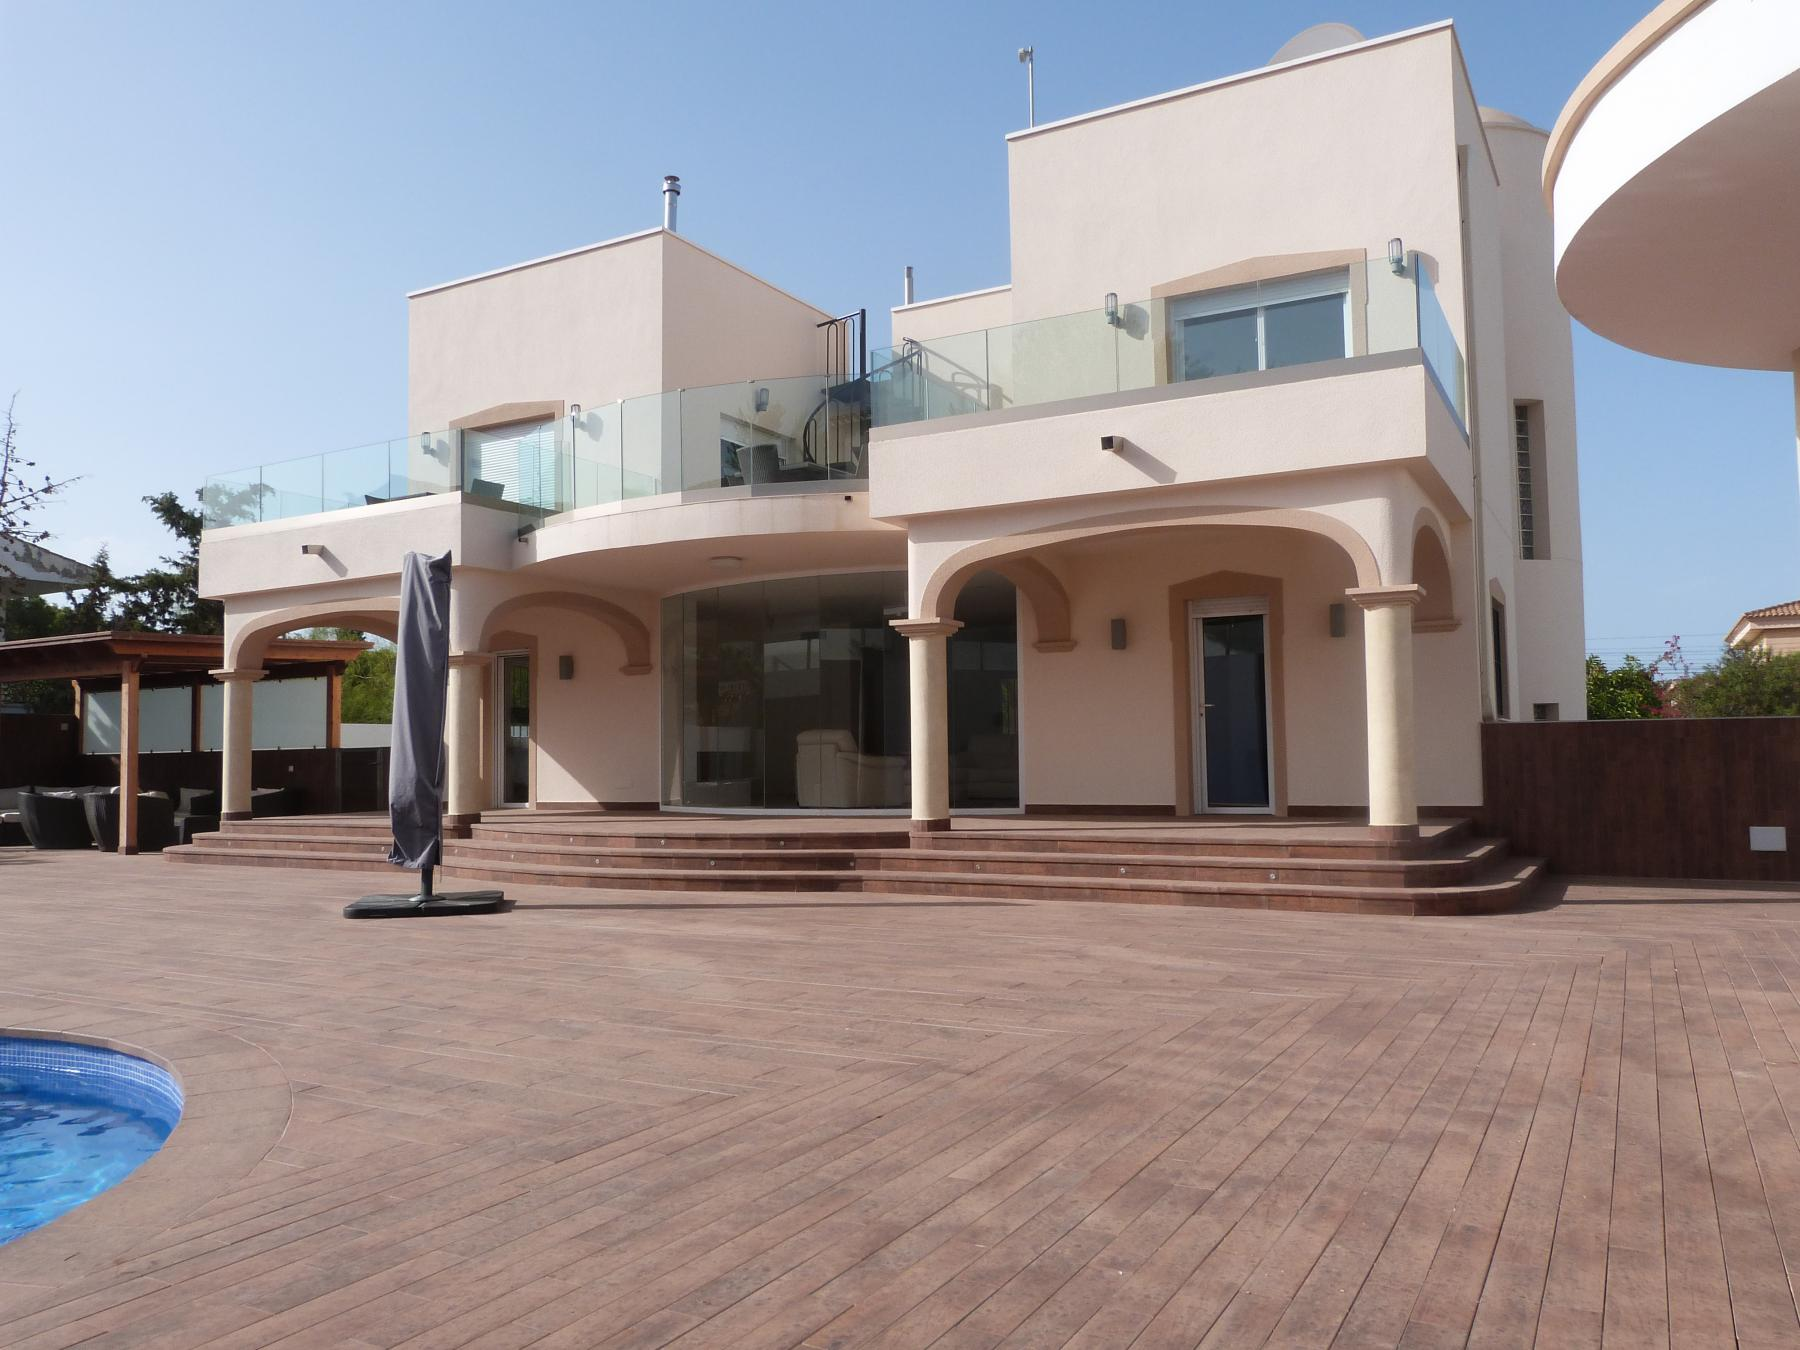 PALATIAL VILLA IN LOVELY SAN GINES